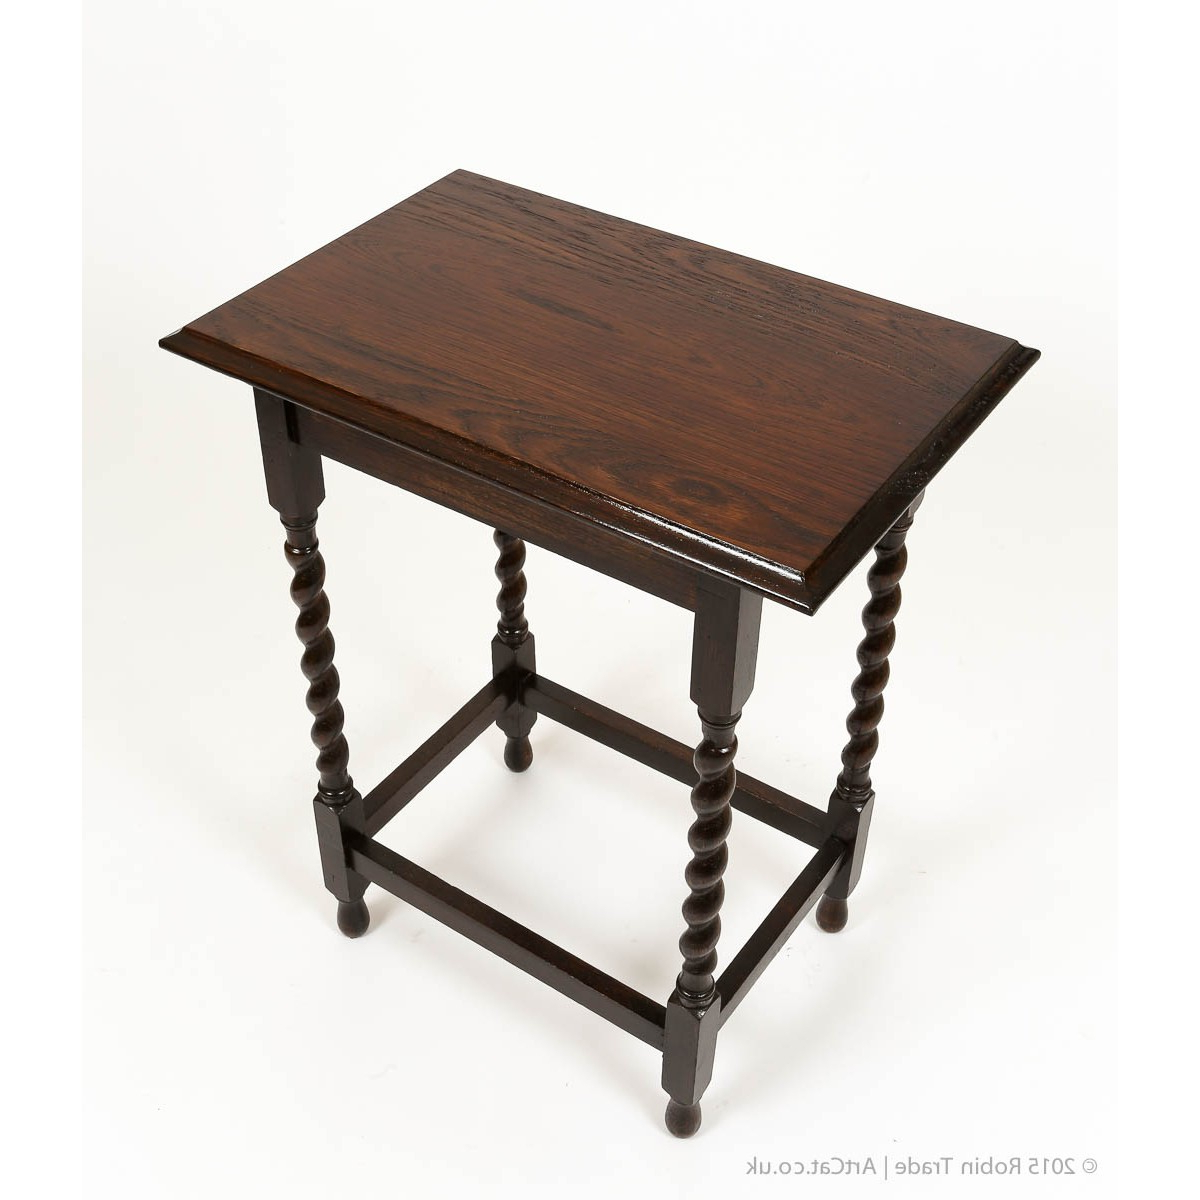 Most Recent Antique Early 20Th Century Small Side Table With Barley Twist Legs Within Barley Twist Coffee Tables (View 14 of 20)